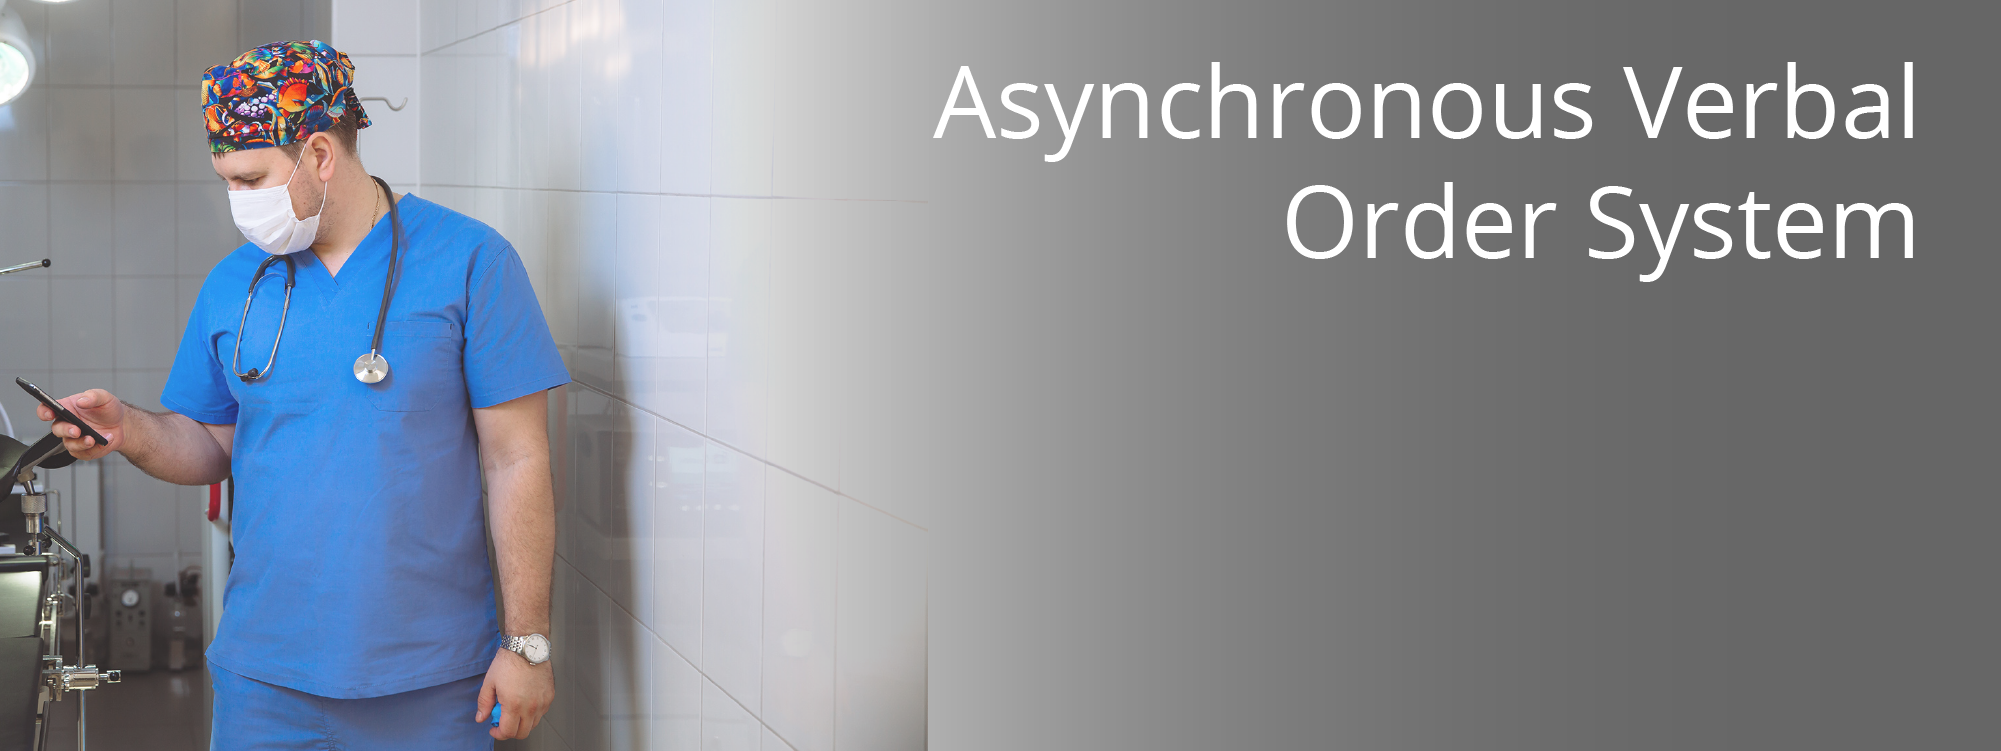 Telmediq Introduces Asynchronous Verbal Order System (AVOS)